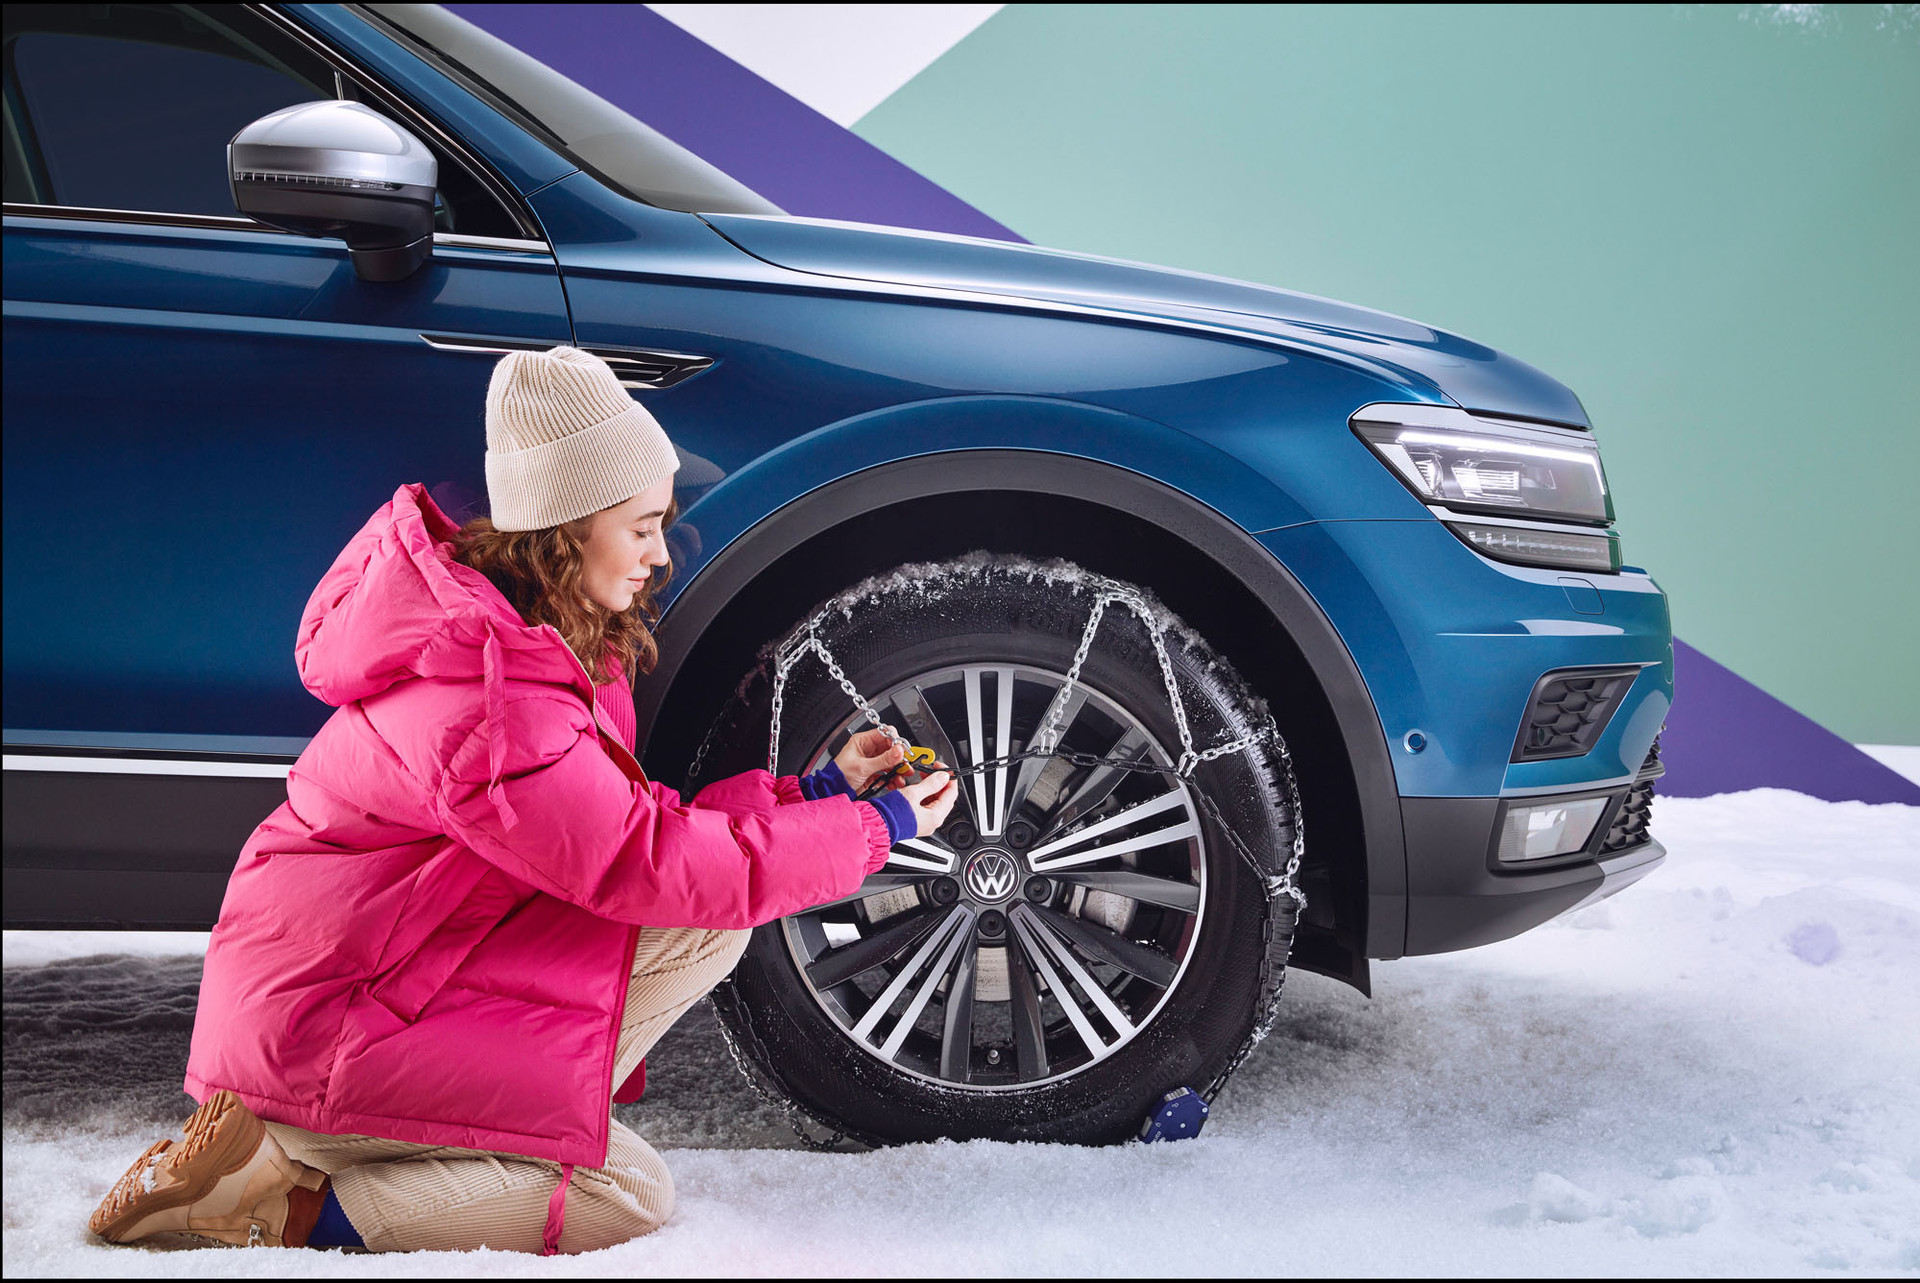 VW_RGB_Fit_fuer_den_Winter_Motiv_09_1430